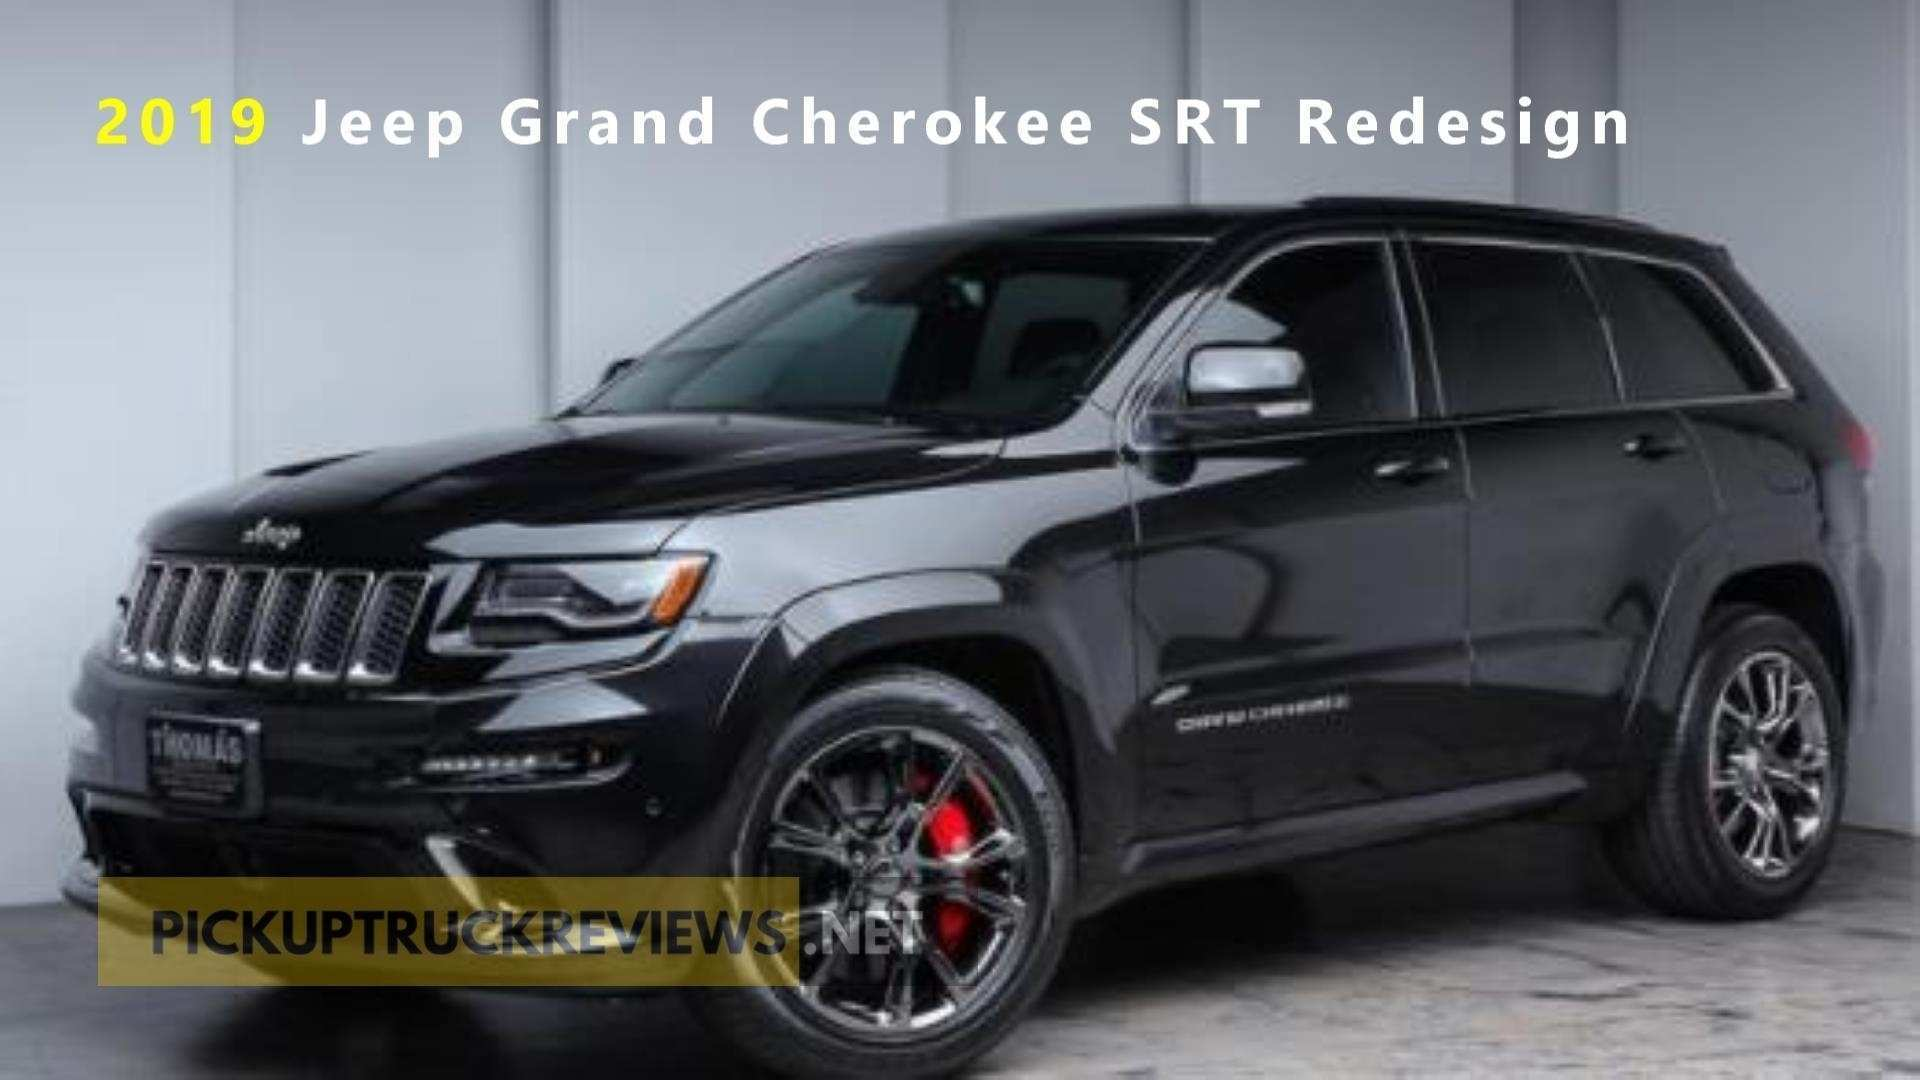 71 All New 2019 Jeep Srt8 Rumors with 2019 Jeep Srt8